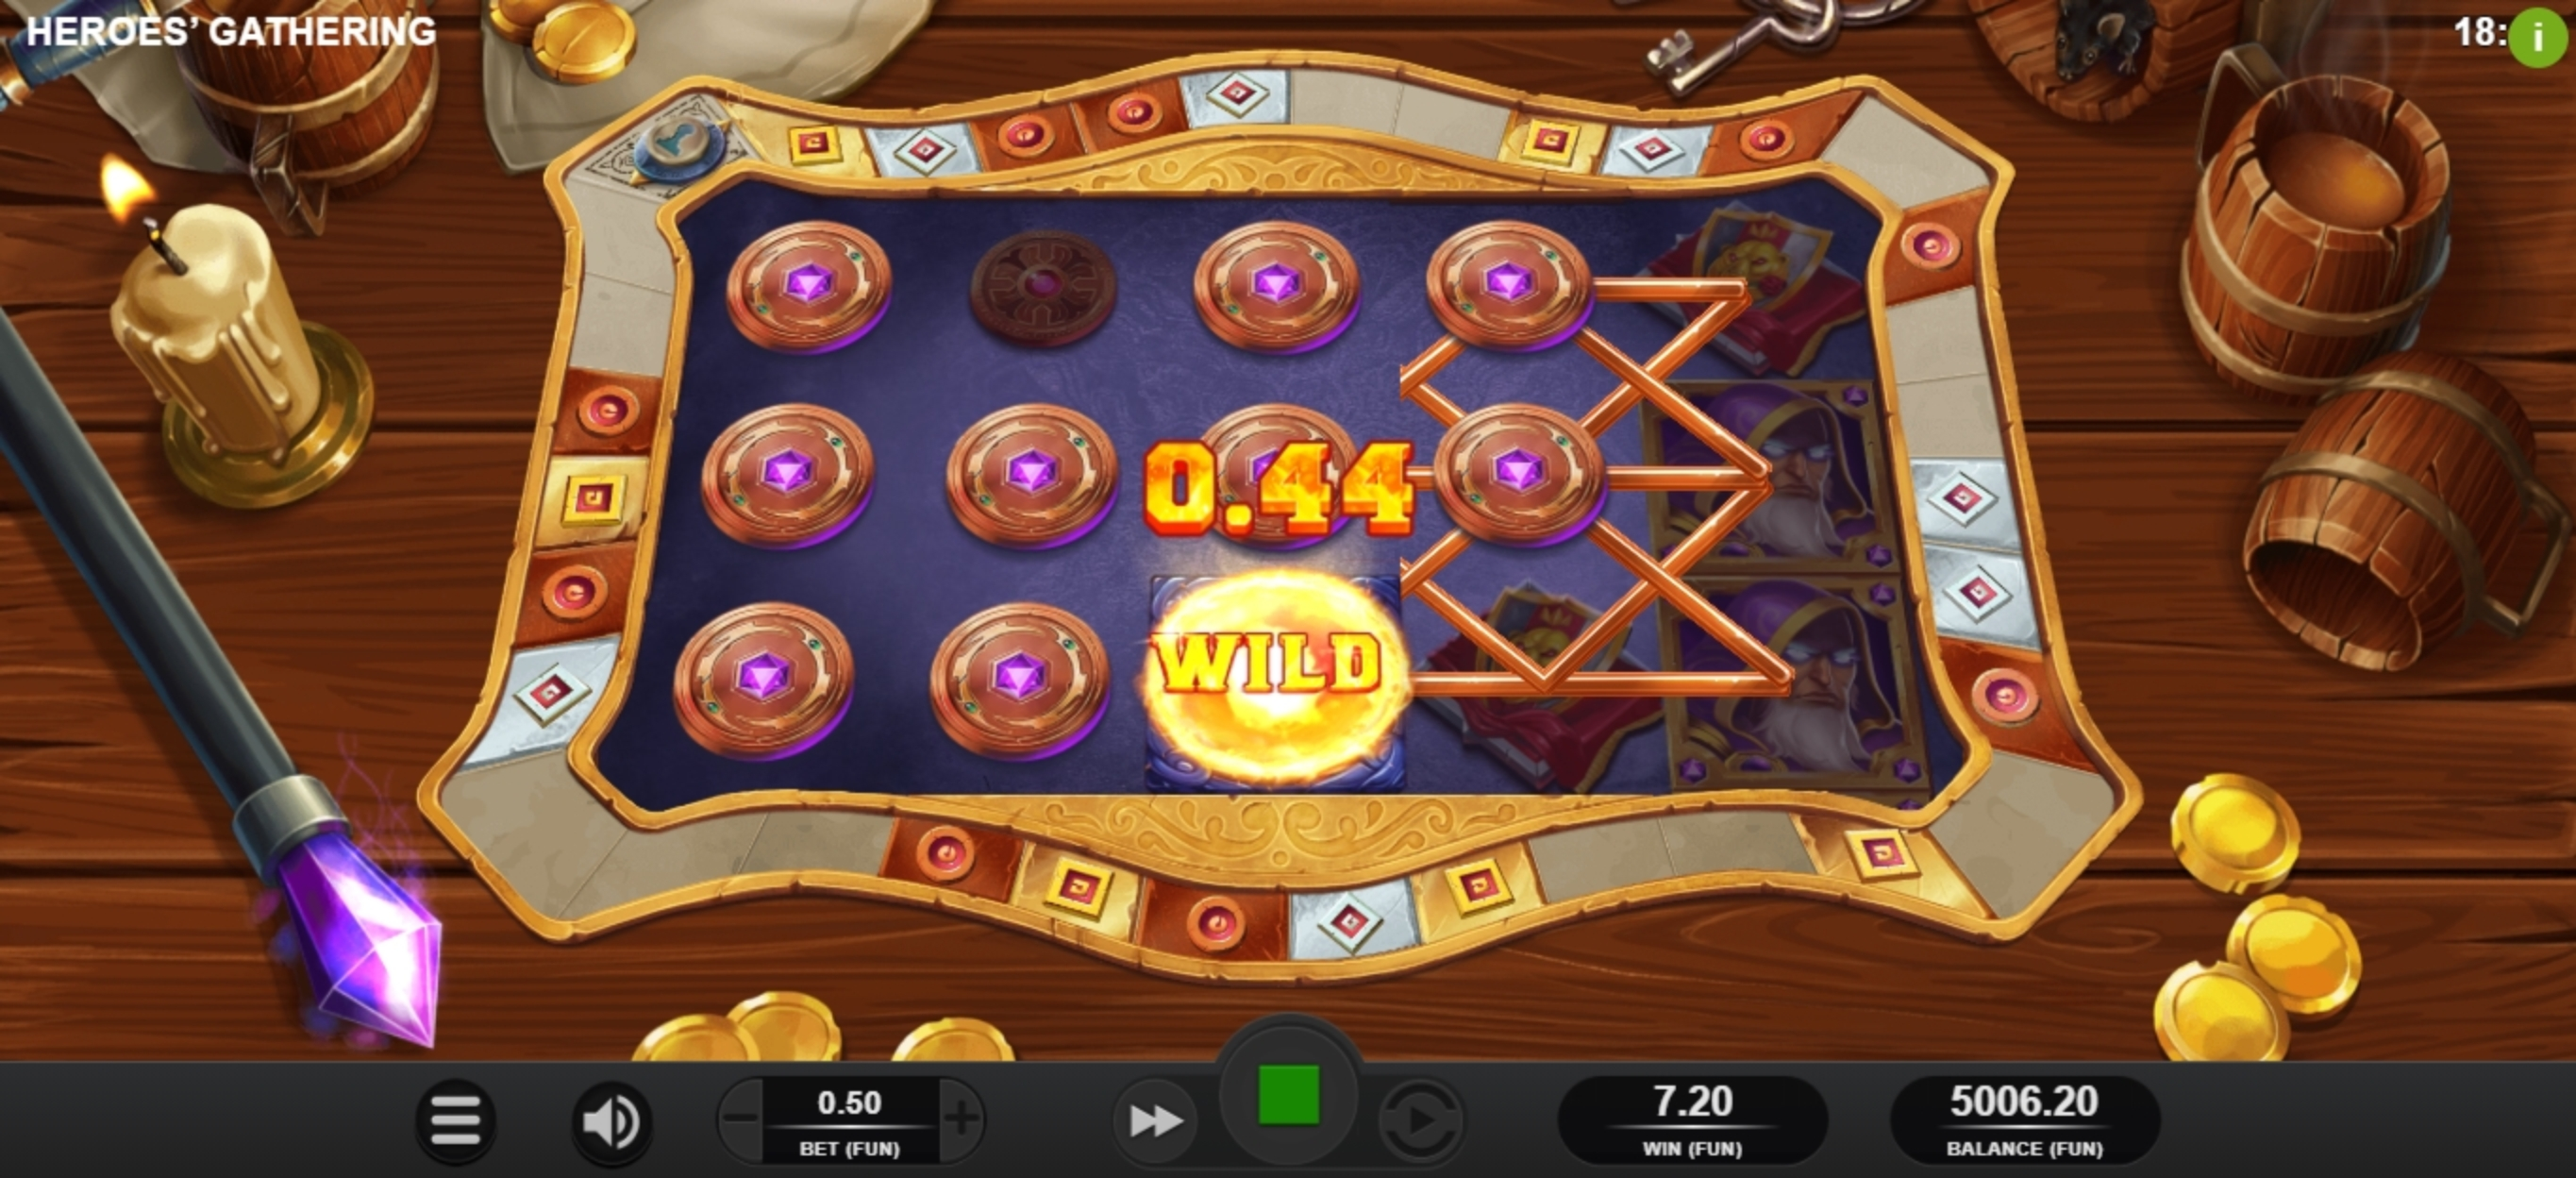 Win Money in Heroes Gathering Free Slot Game by Relax Gaming